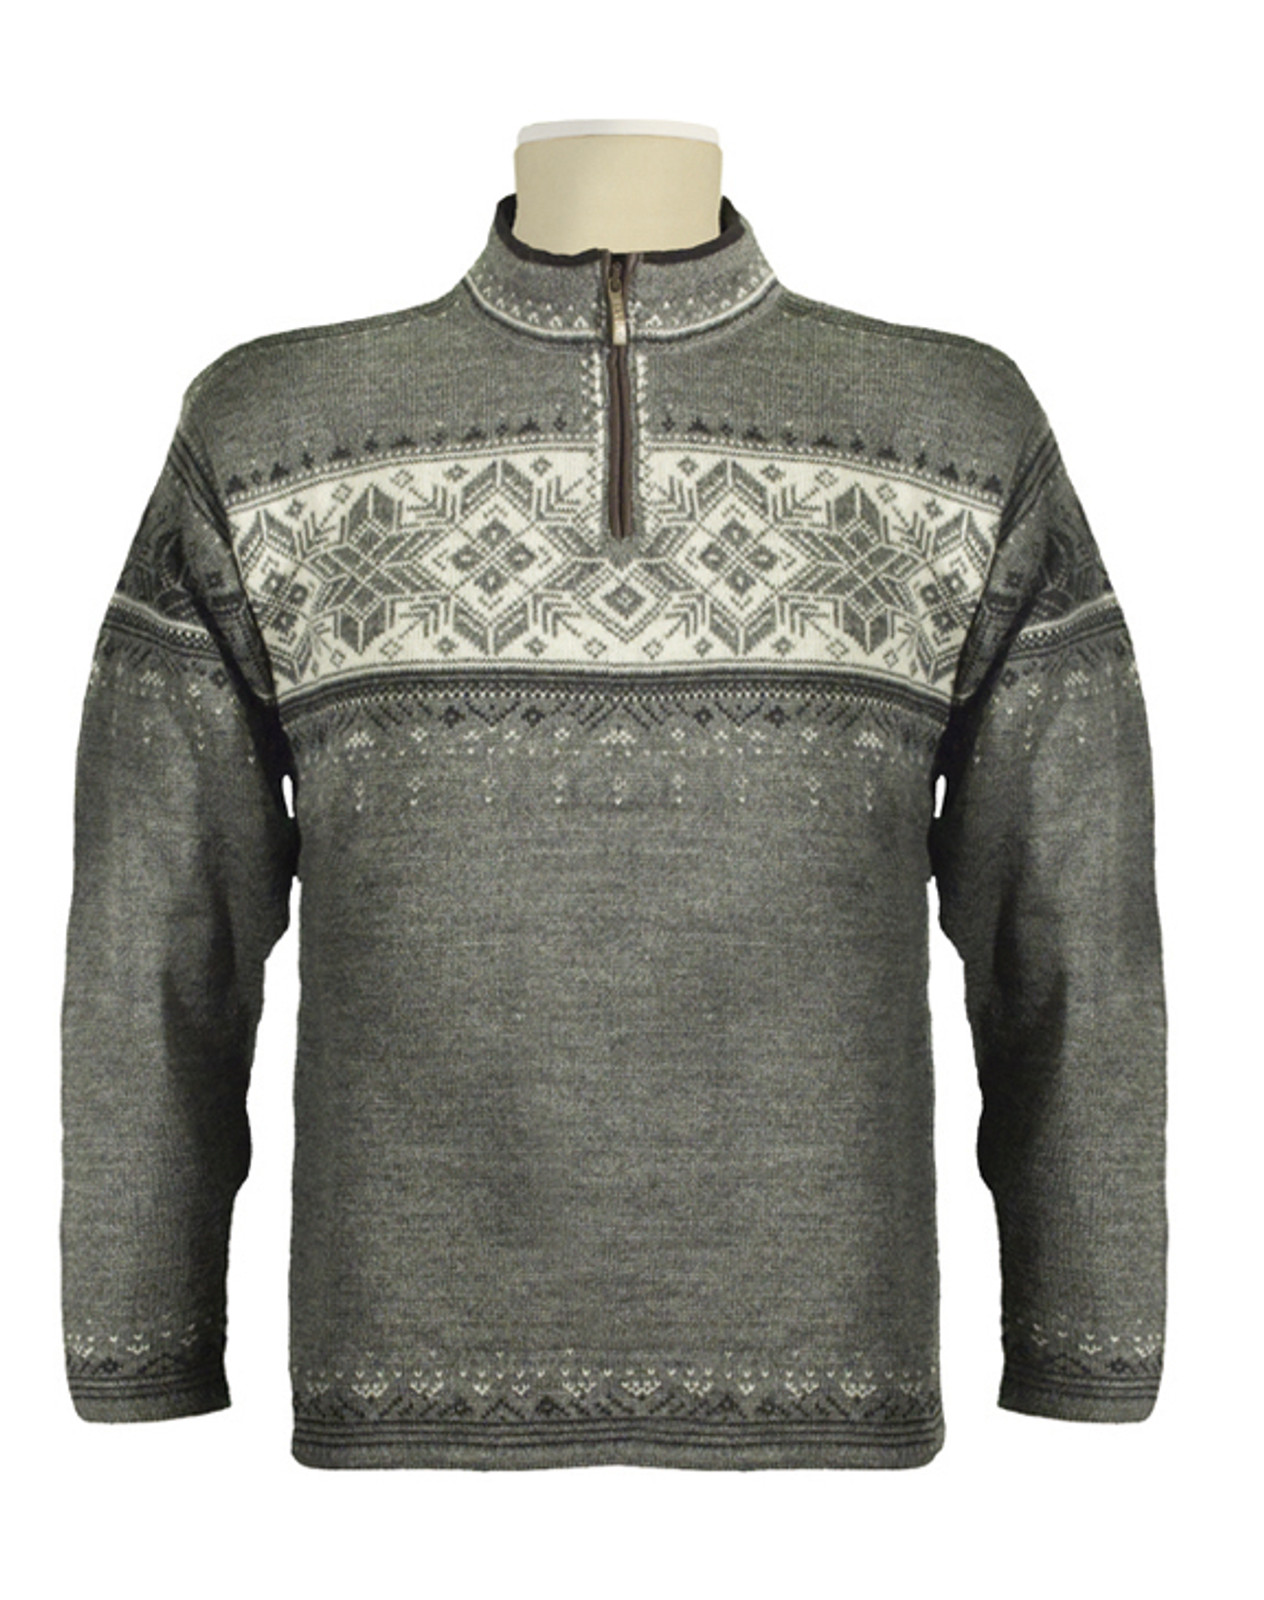 Dale of Norway, Blyfjell Sweater, Unisex, in Smoke/Dark Charcoal/Off White/Light Charcoal, 91291-E